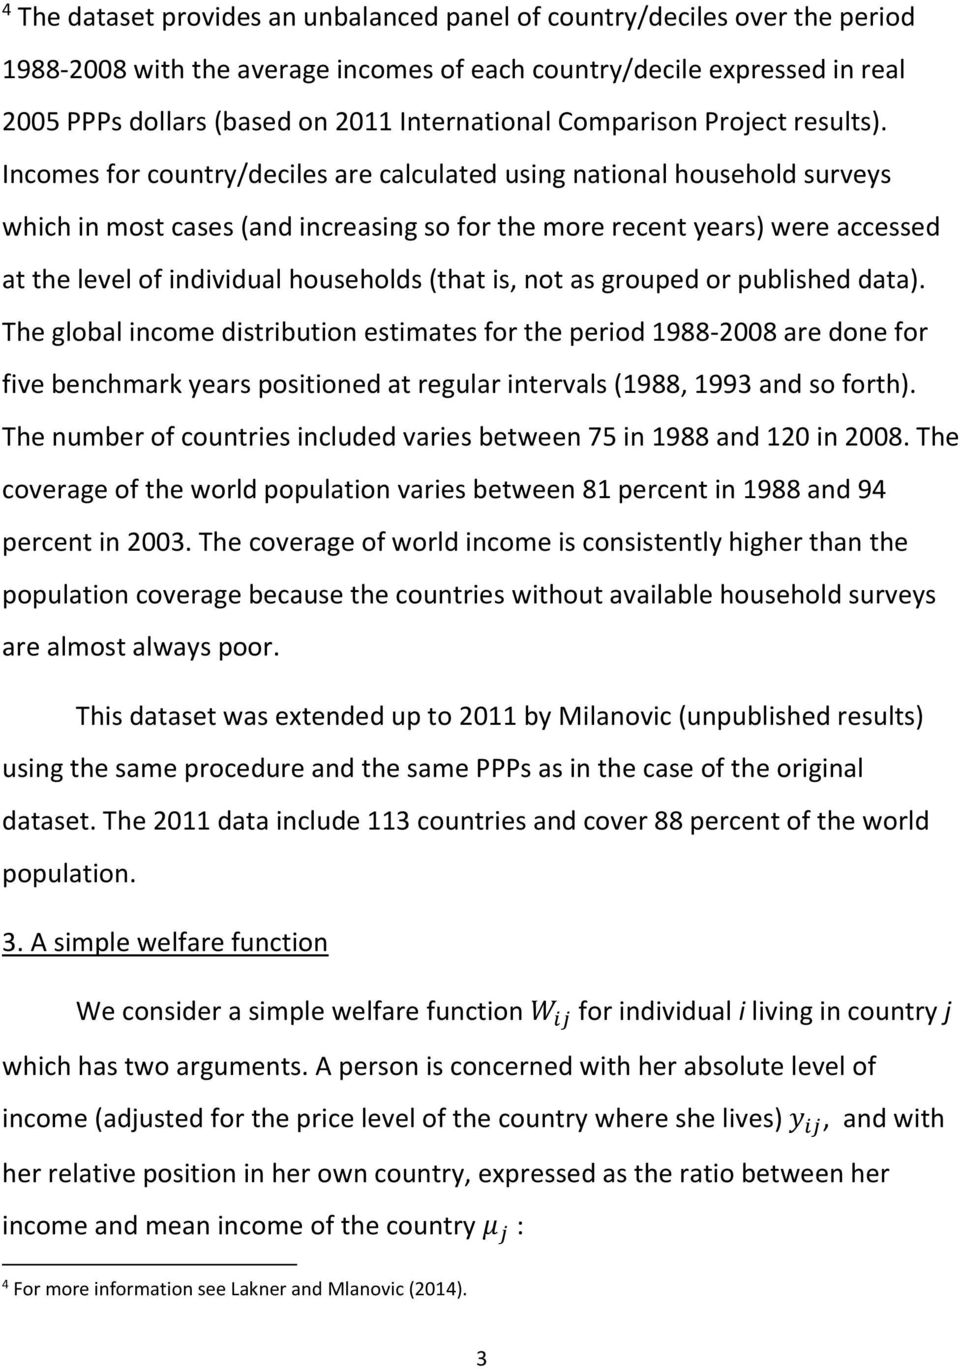 Incomes for country/deciles are calculated using national household surveys which in most cases (and increasing so for the more recent years) were accessed at the level of individual households (that